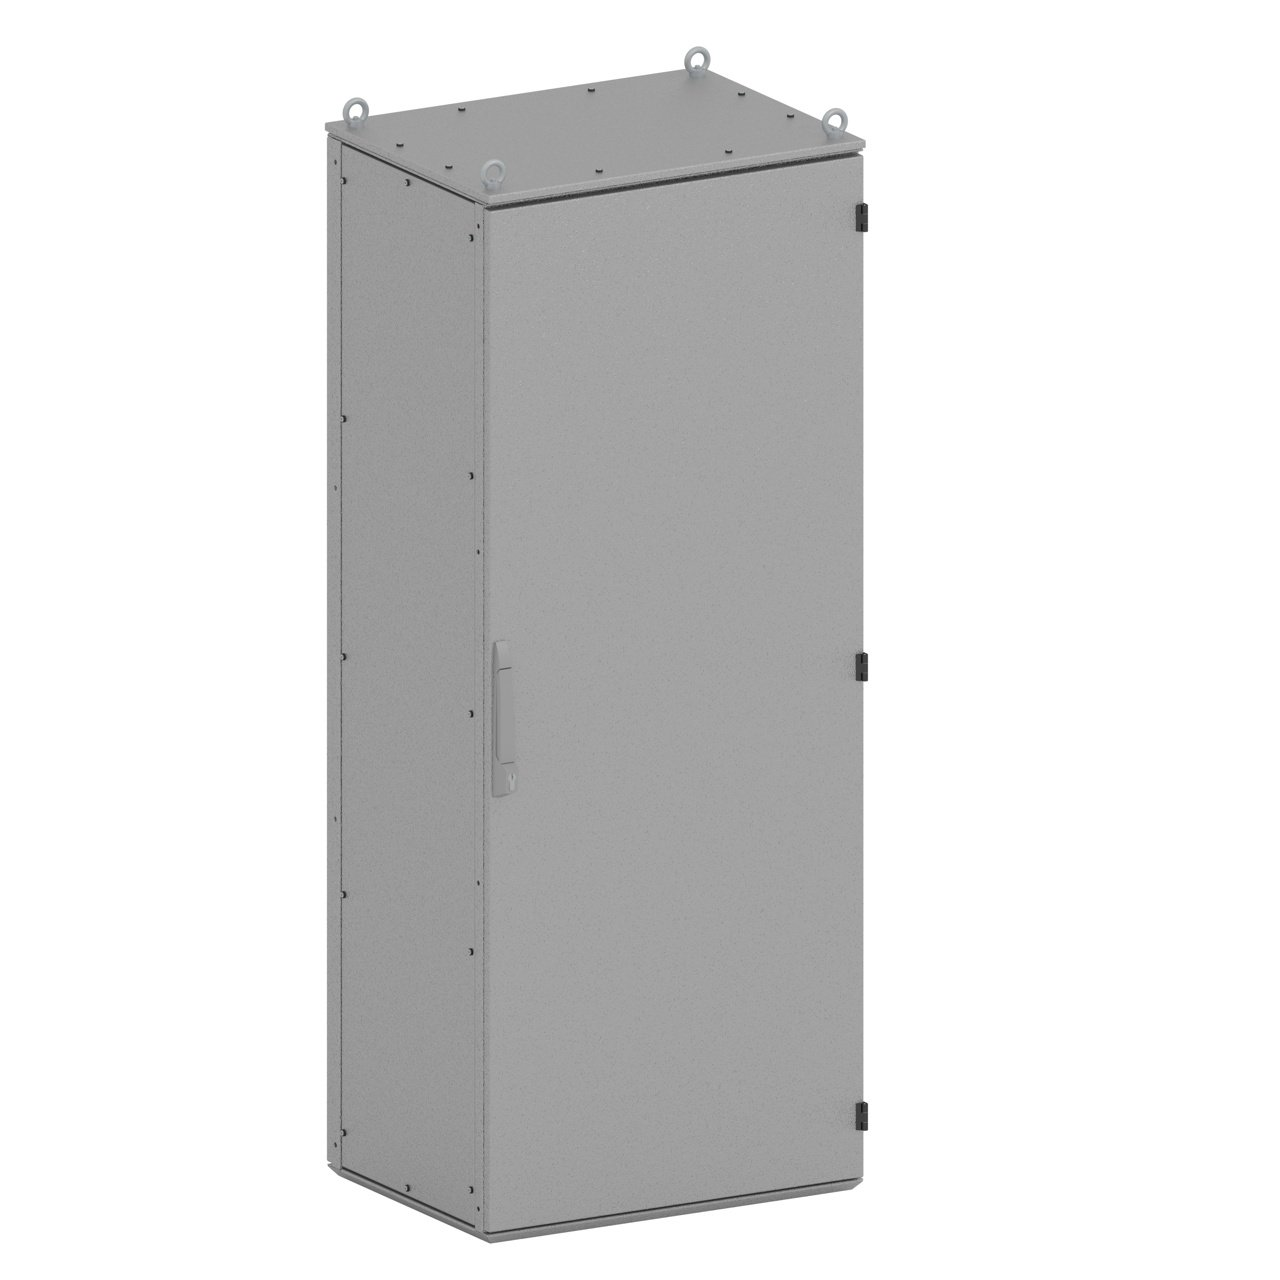 The ESO-II one-door electrical enclosure by SencoPB has a permanent skeleton design and the largest capacity at 500kg.